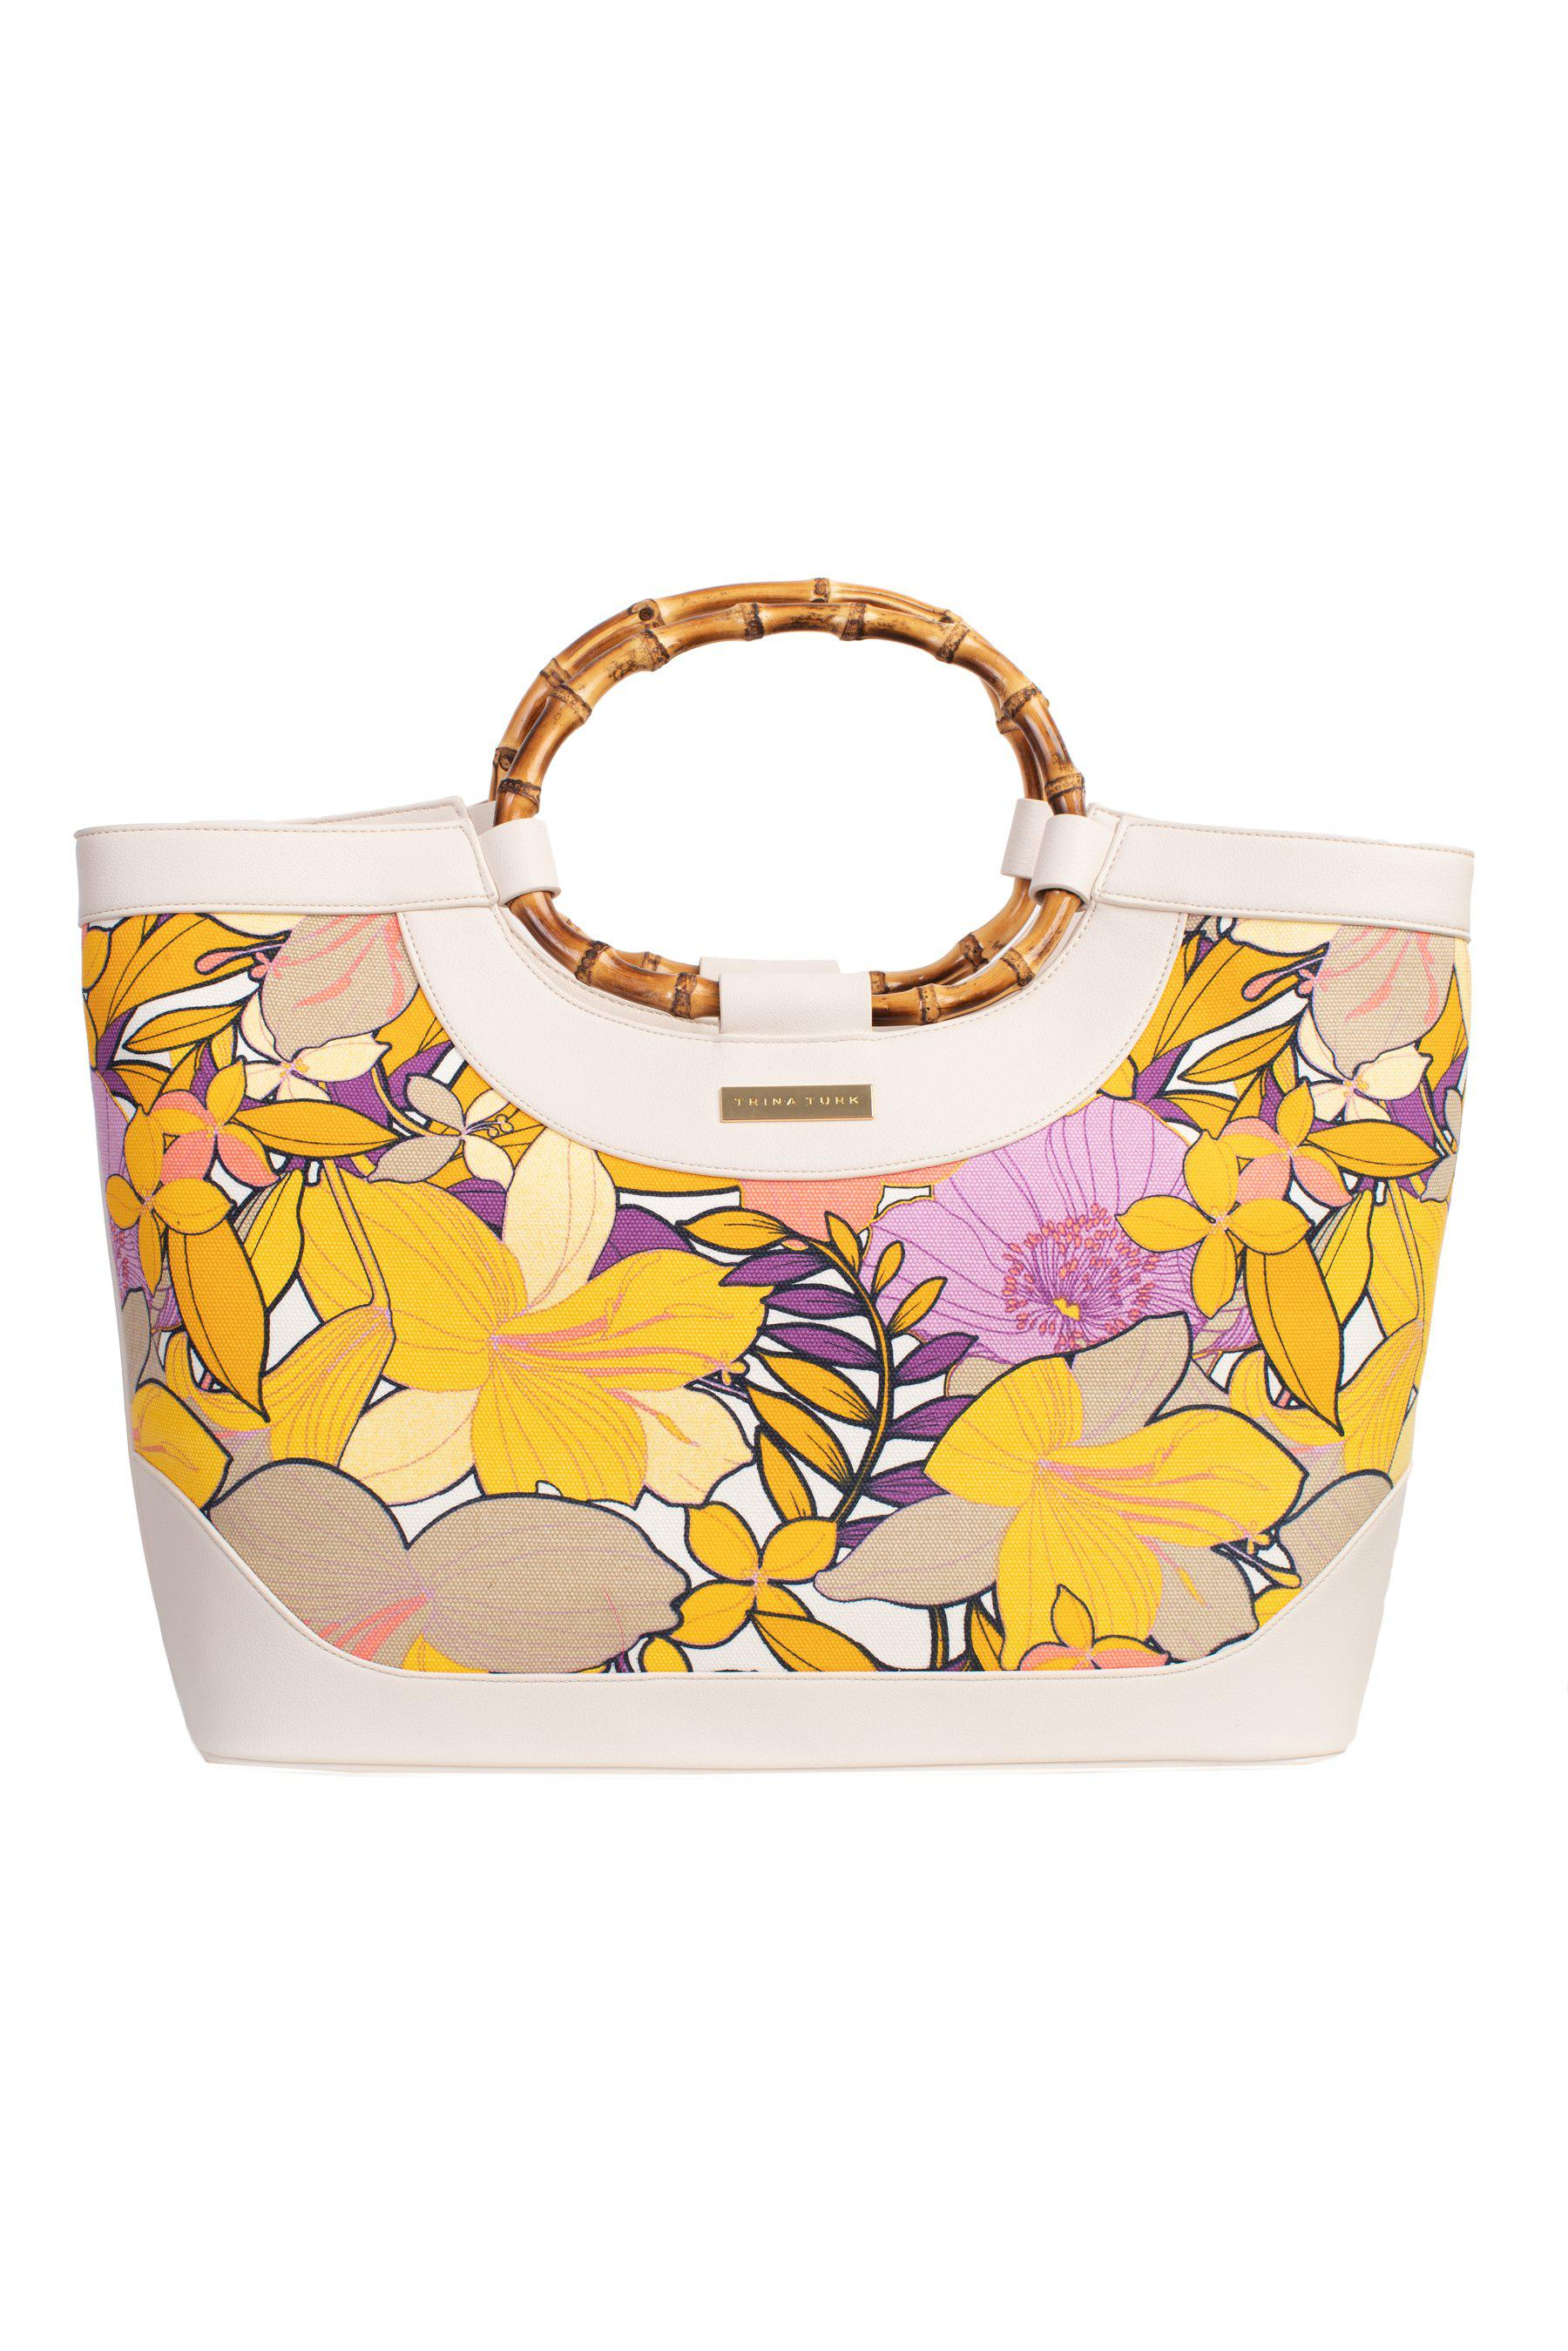 SOLAIRE LILY BAMBOO NAPA TOTE